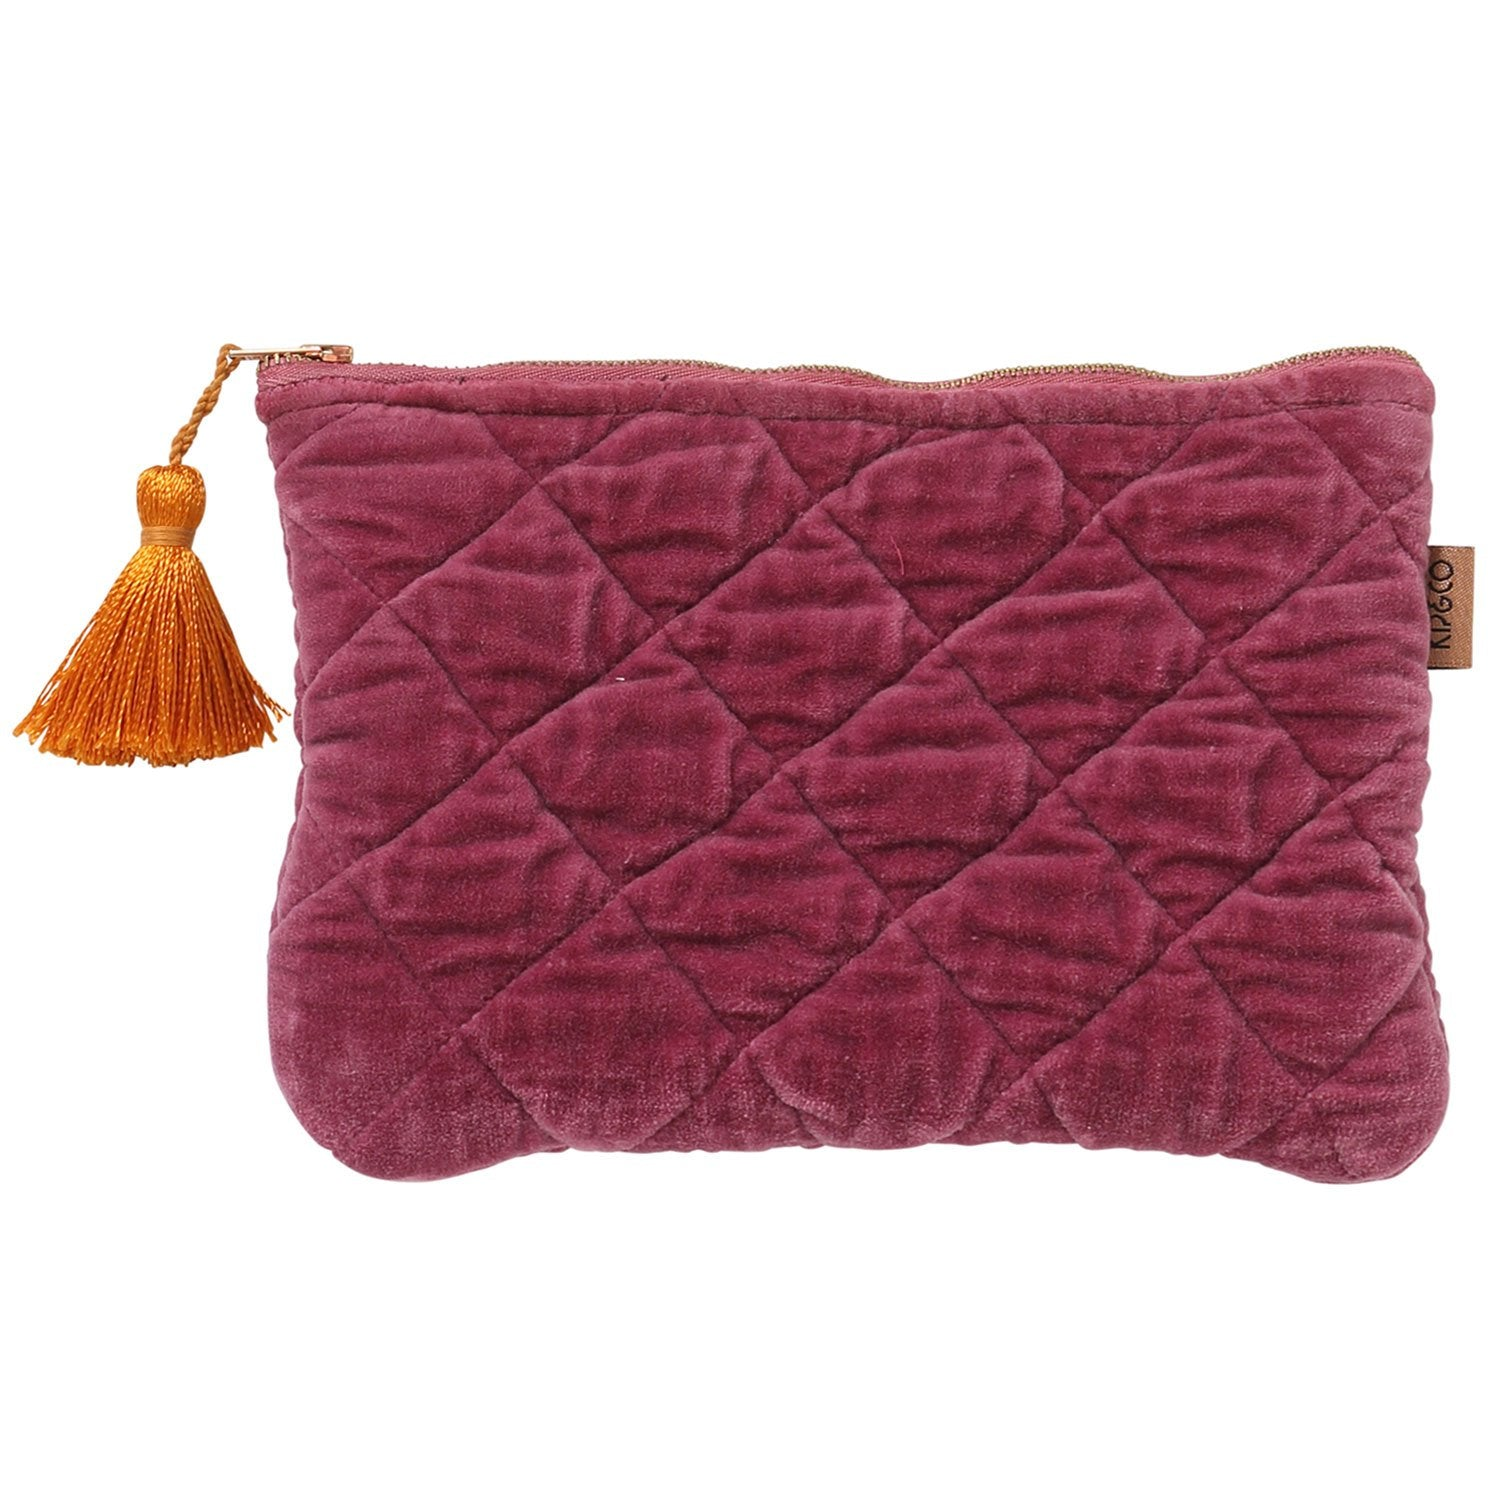 Kip & Co Peony Rose Velvet Quilted Cosmetics Purse - The Artisan Storeroom